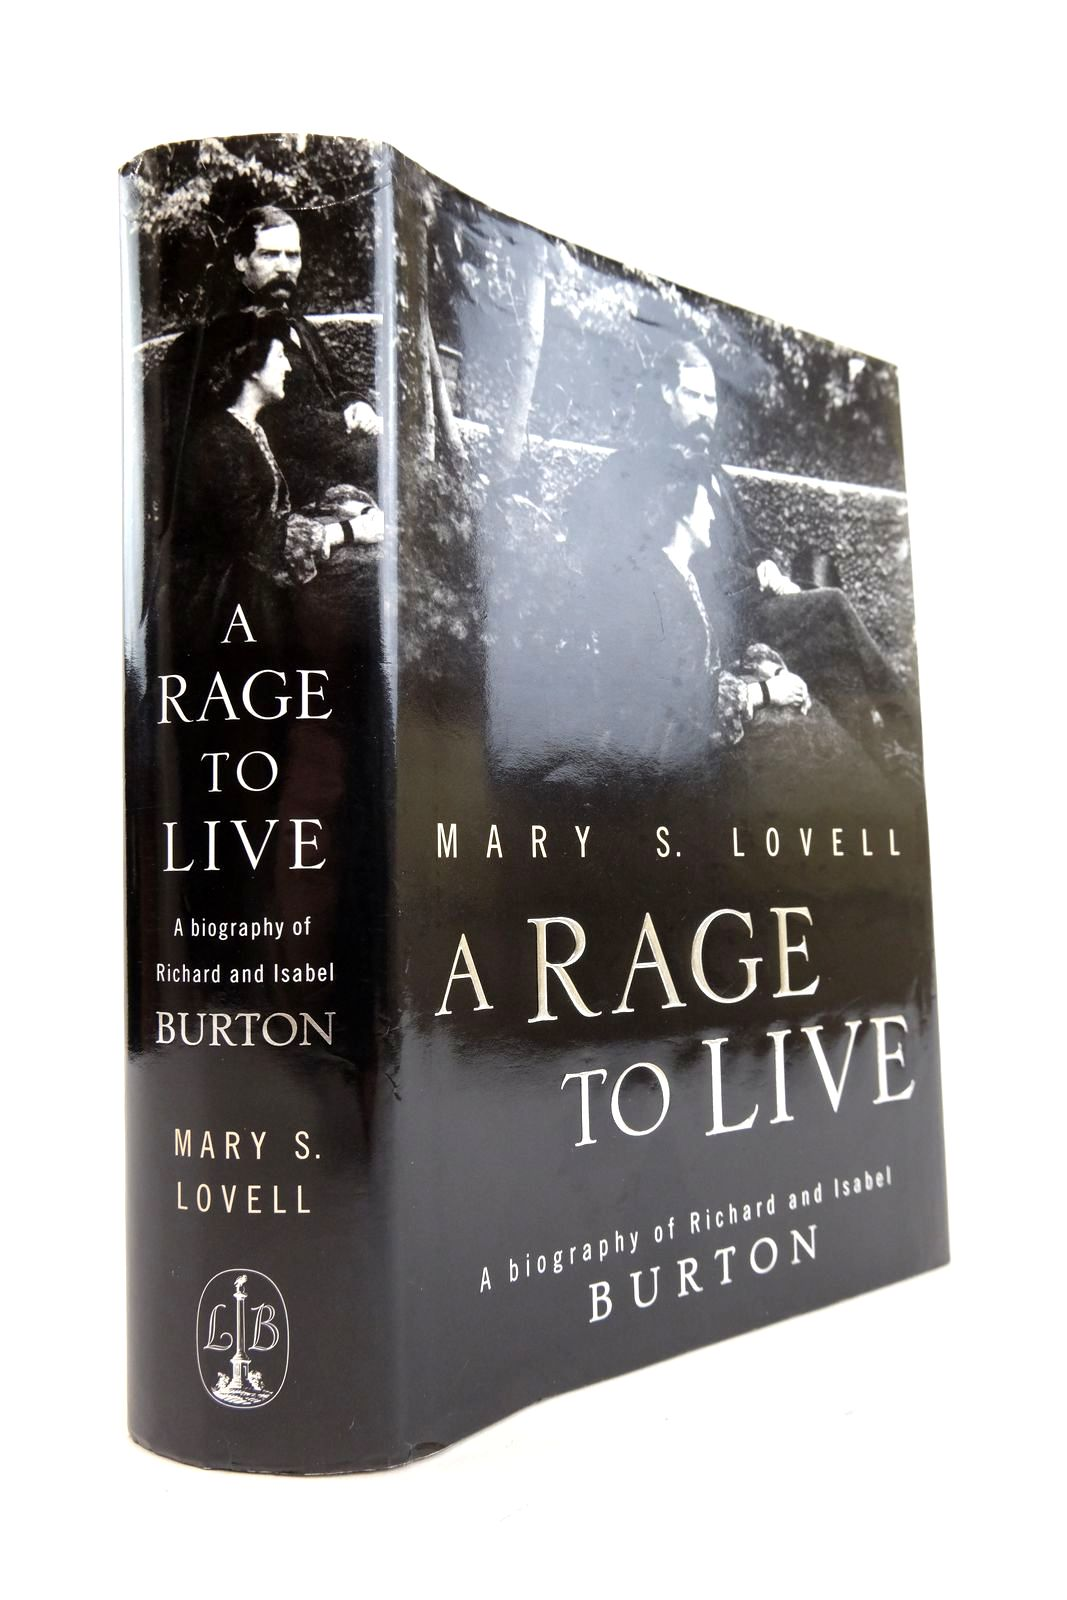 Photo of A RAGE TO LIVE written by Lovell, Mary S. published by Little, Brown And Company (Uk) Limited (STOCK CODE: 2133335)  for sale by Stella & Rose's Books